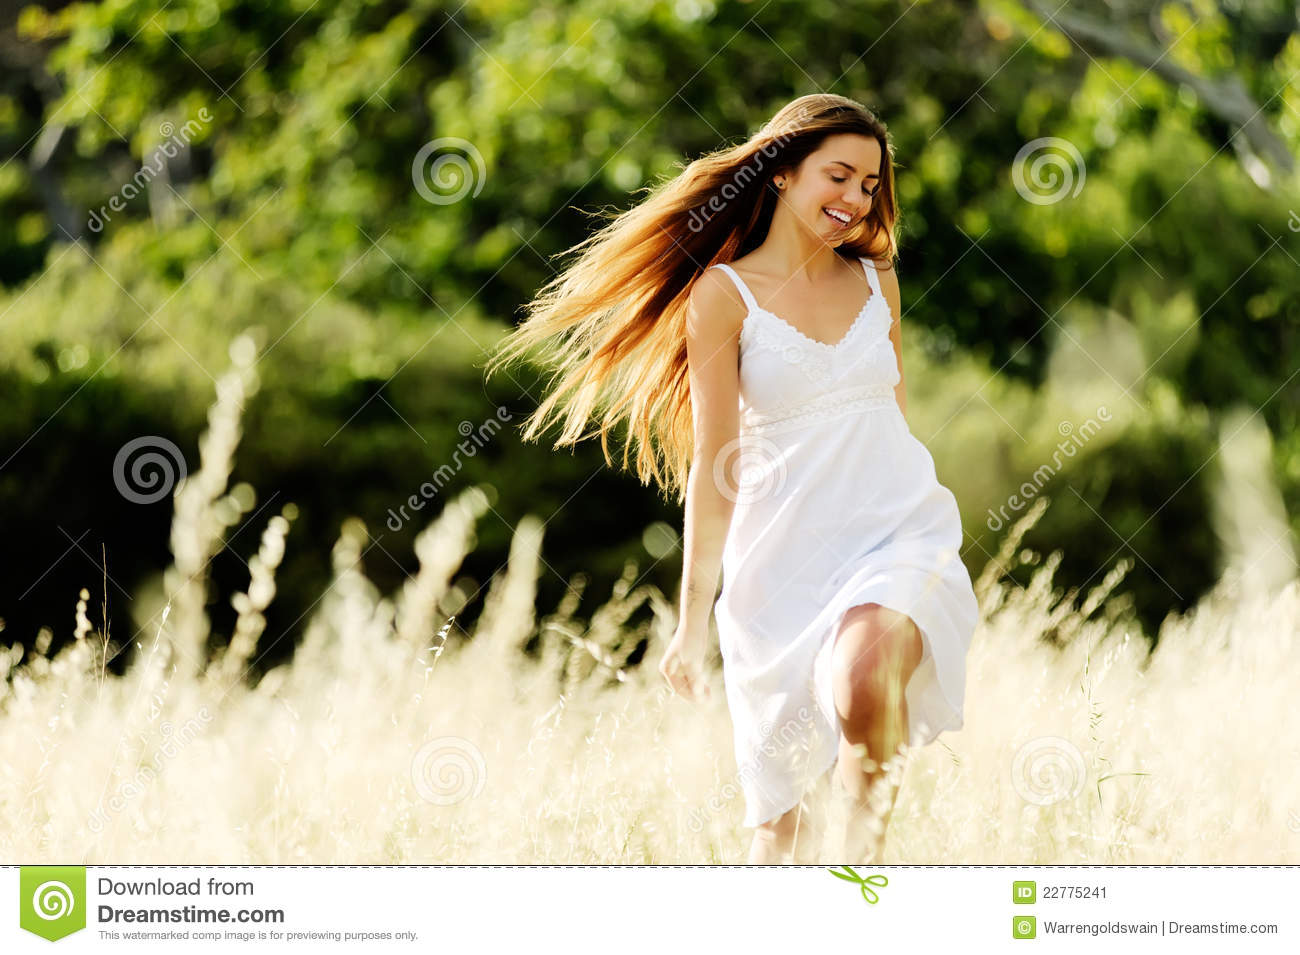 Woman running outdoors in a field